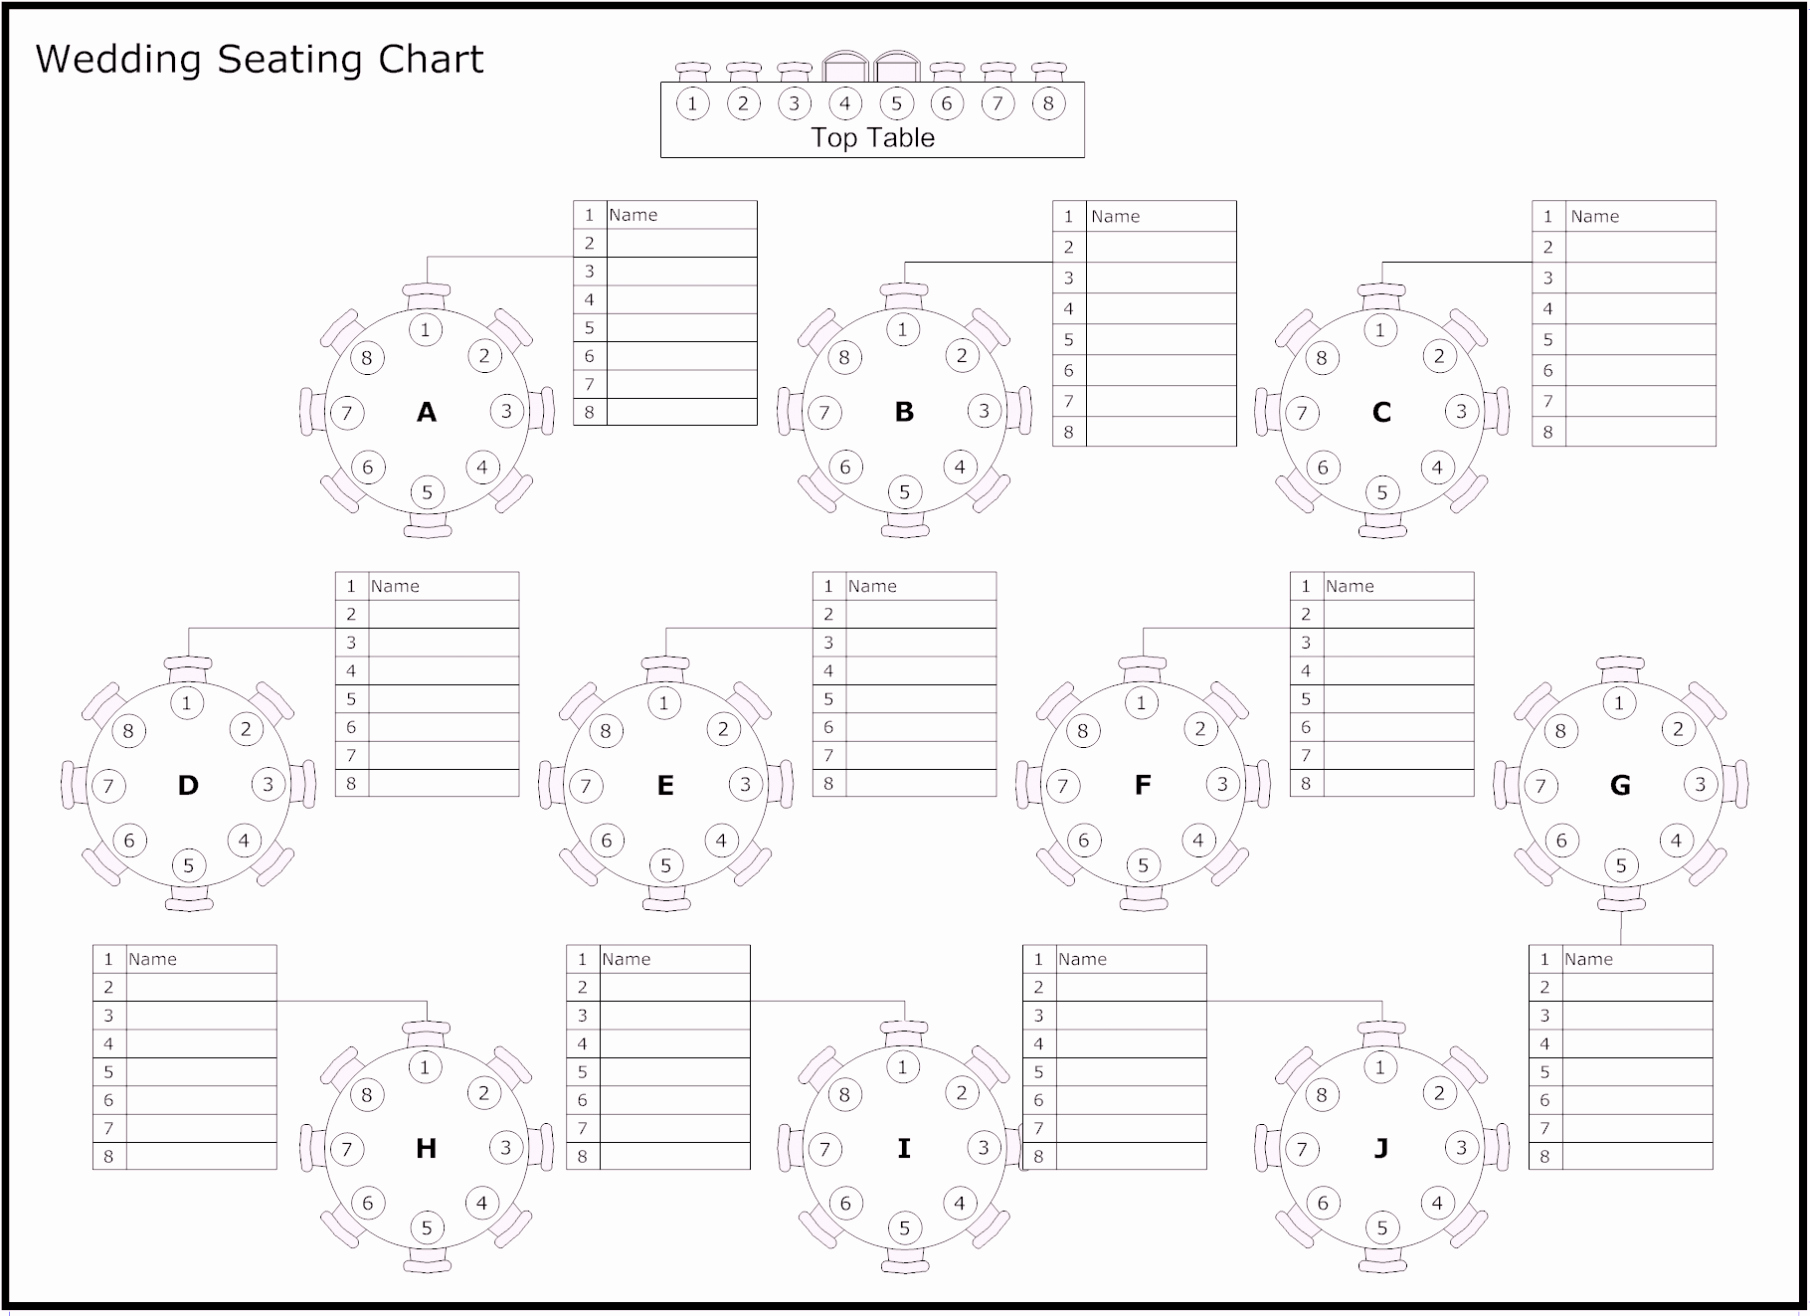 Free Table Of Reception & Wedding Seating Chart Template